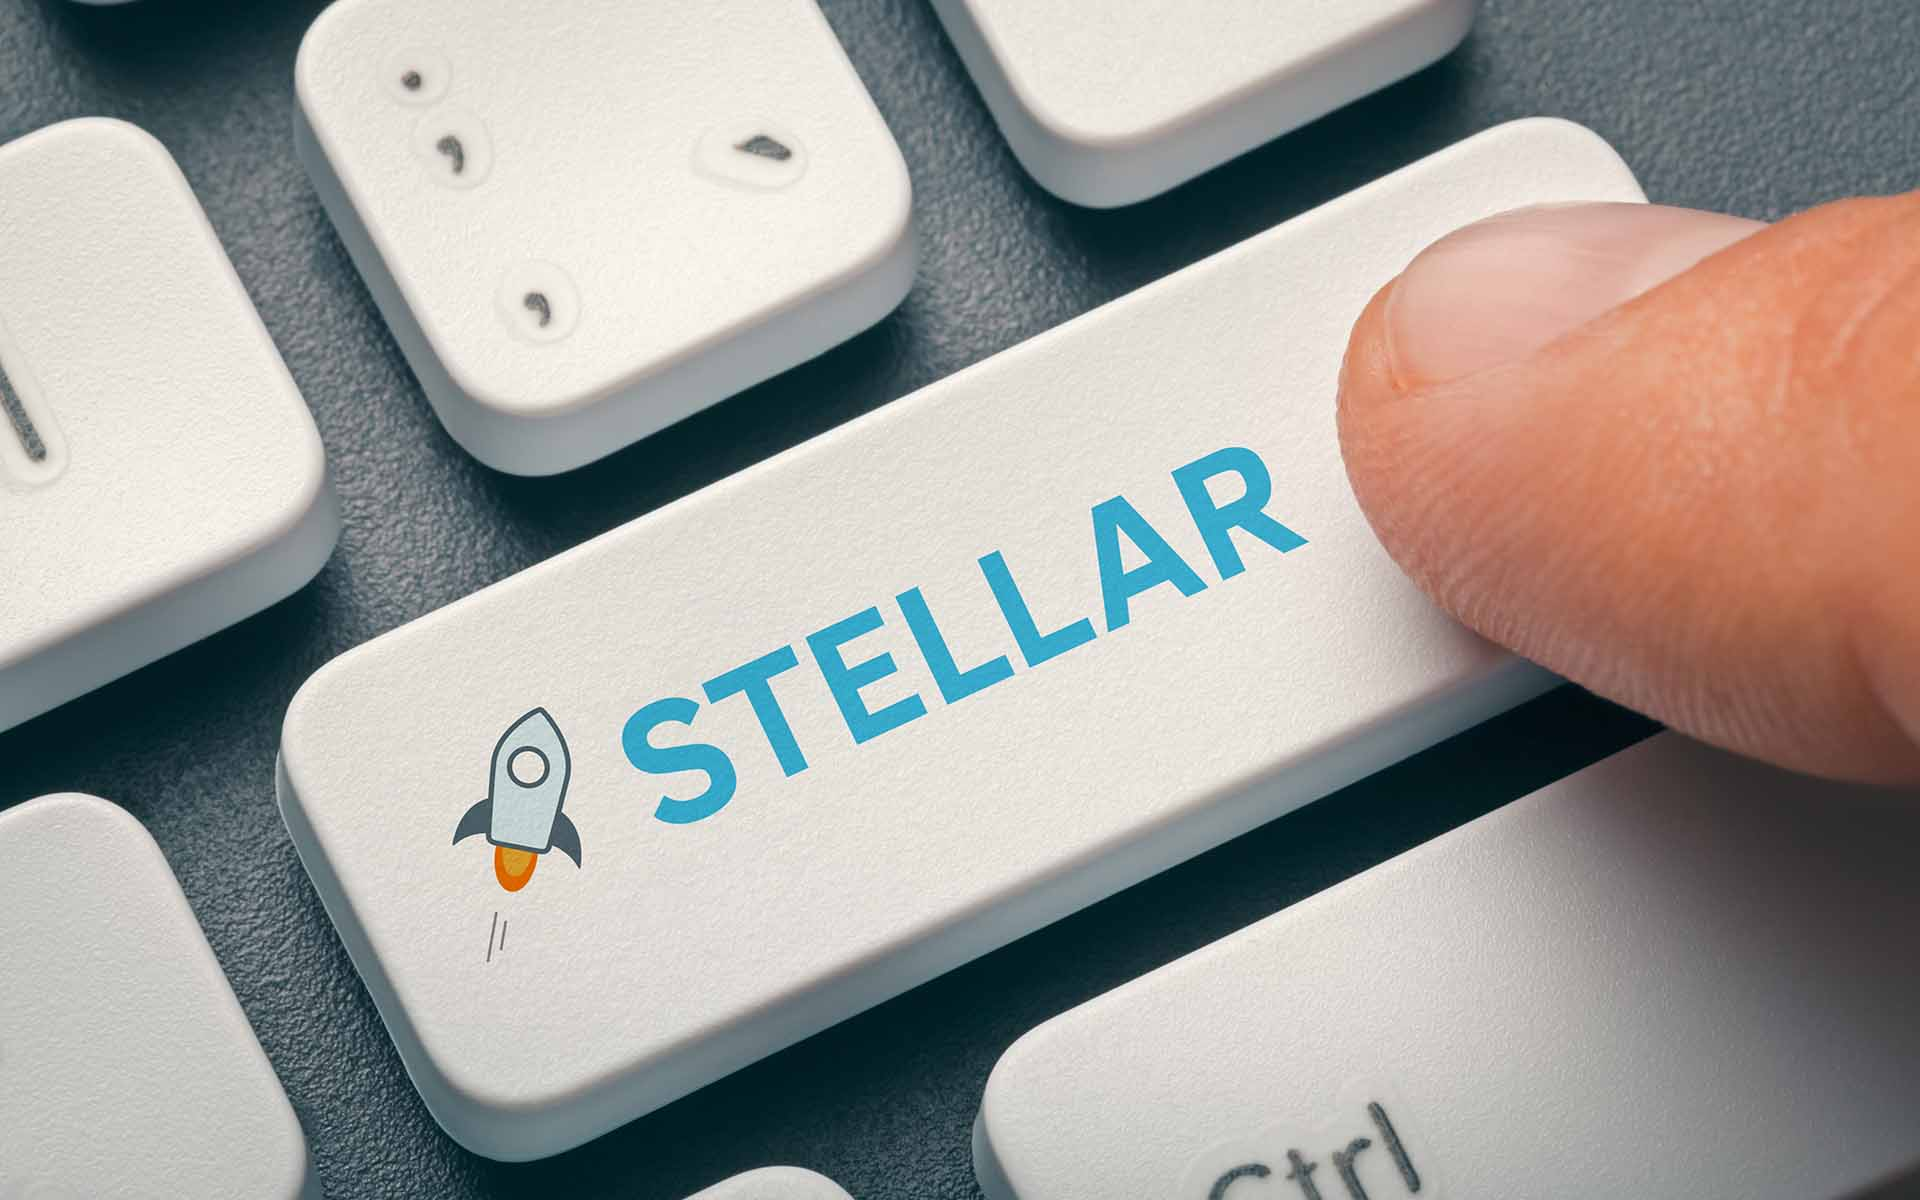 Stellar-Buys-Chain-For-'500M'-—-But-Insider-Trading-Suspicions-Remain